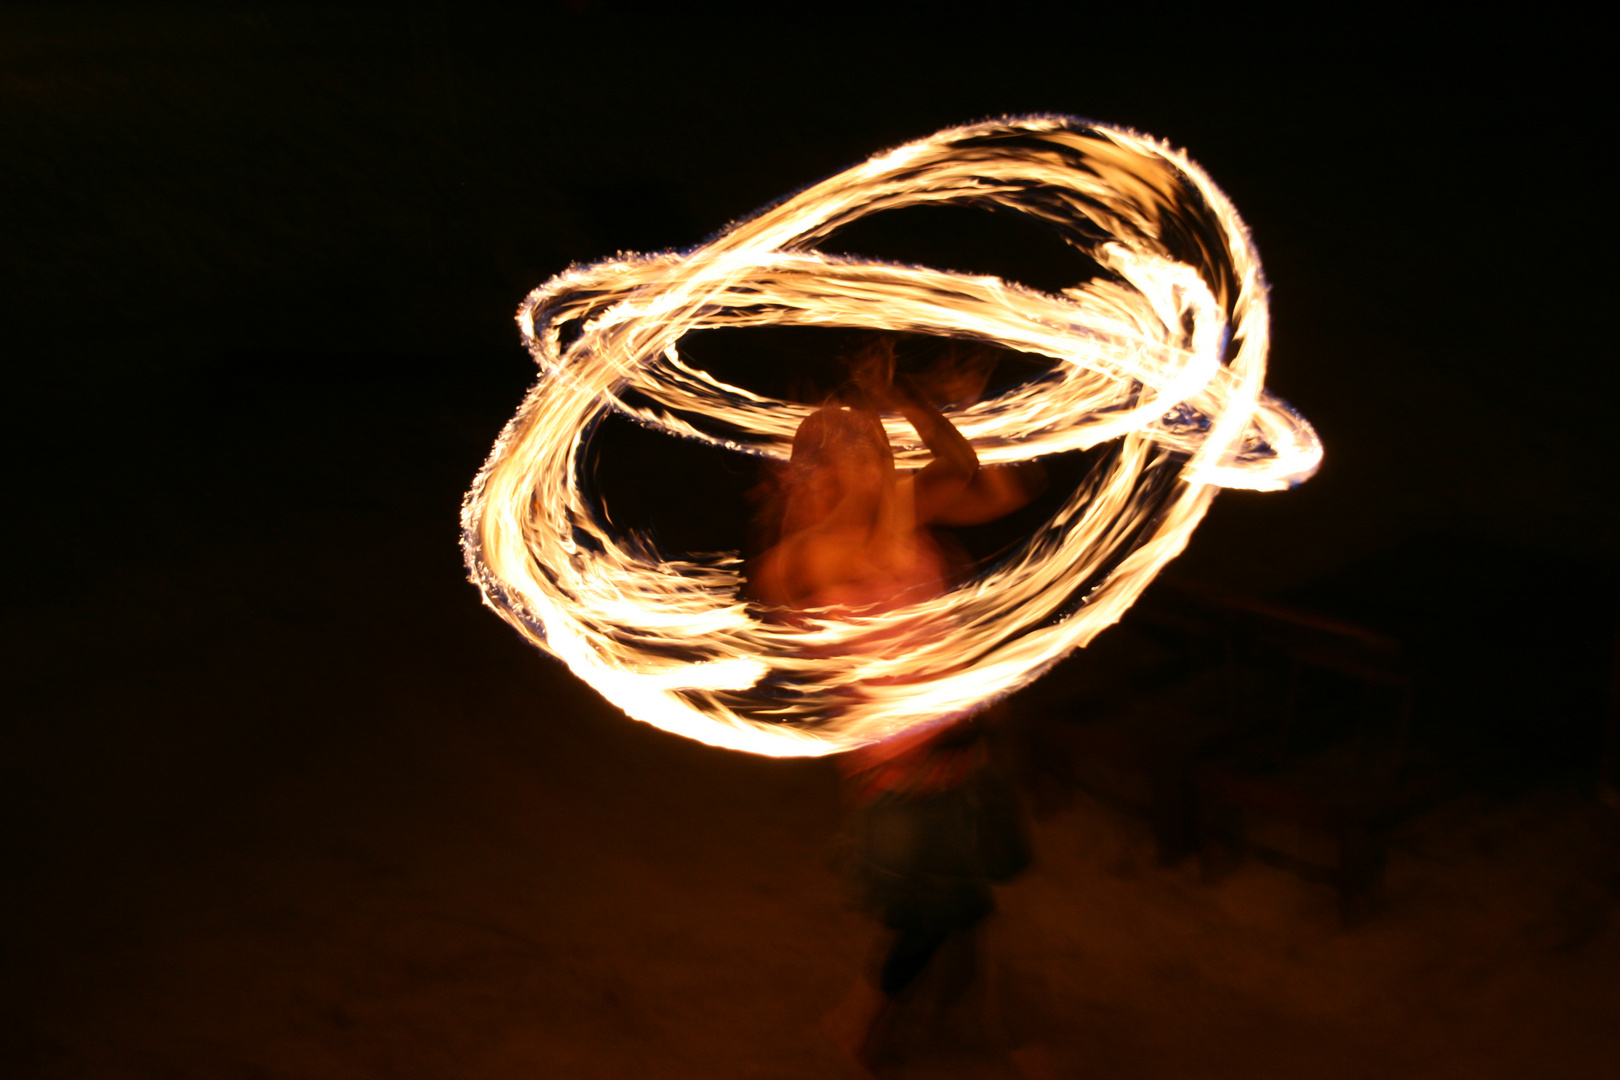 Dancing with fire VI